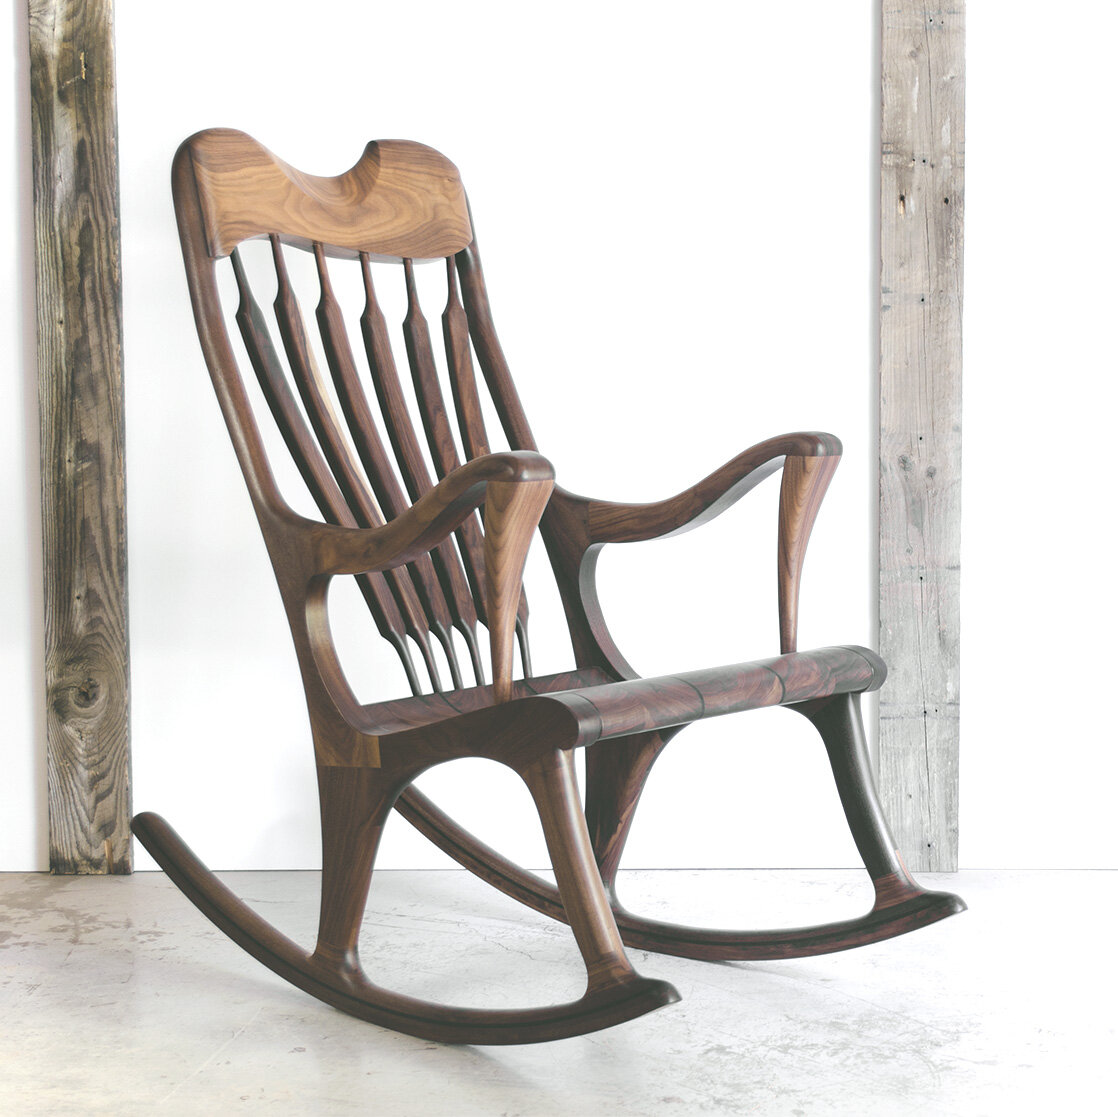 Rocking chair made in Canada